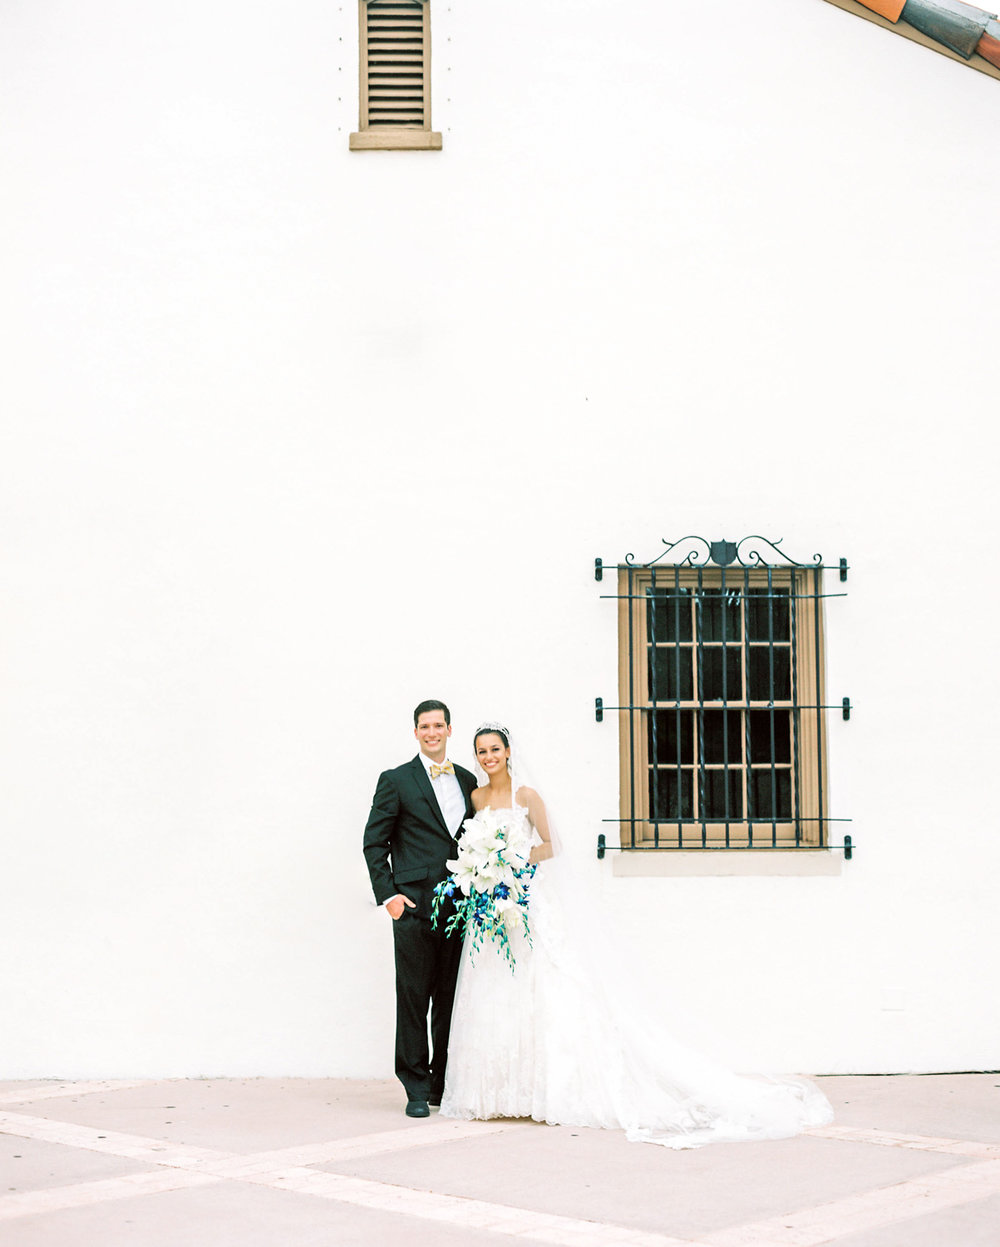 Charlottesville_Miami_Film_Wedding_Photographer-35.jpg